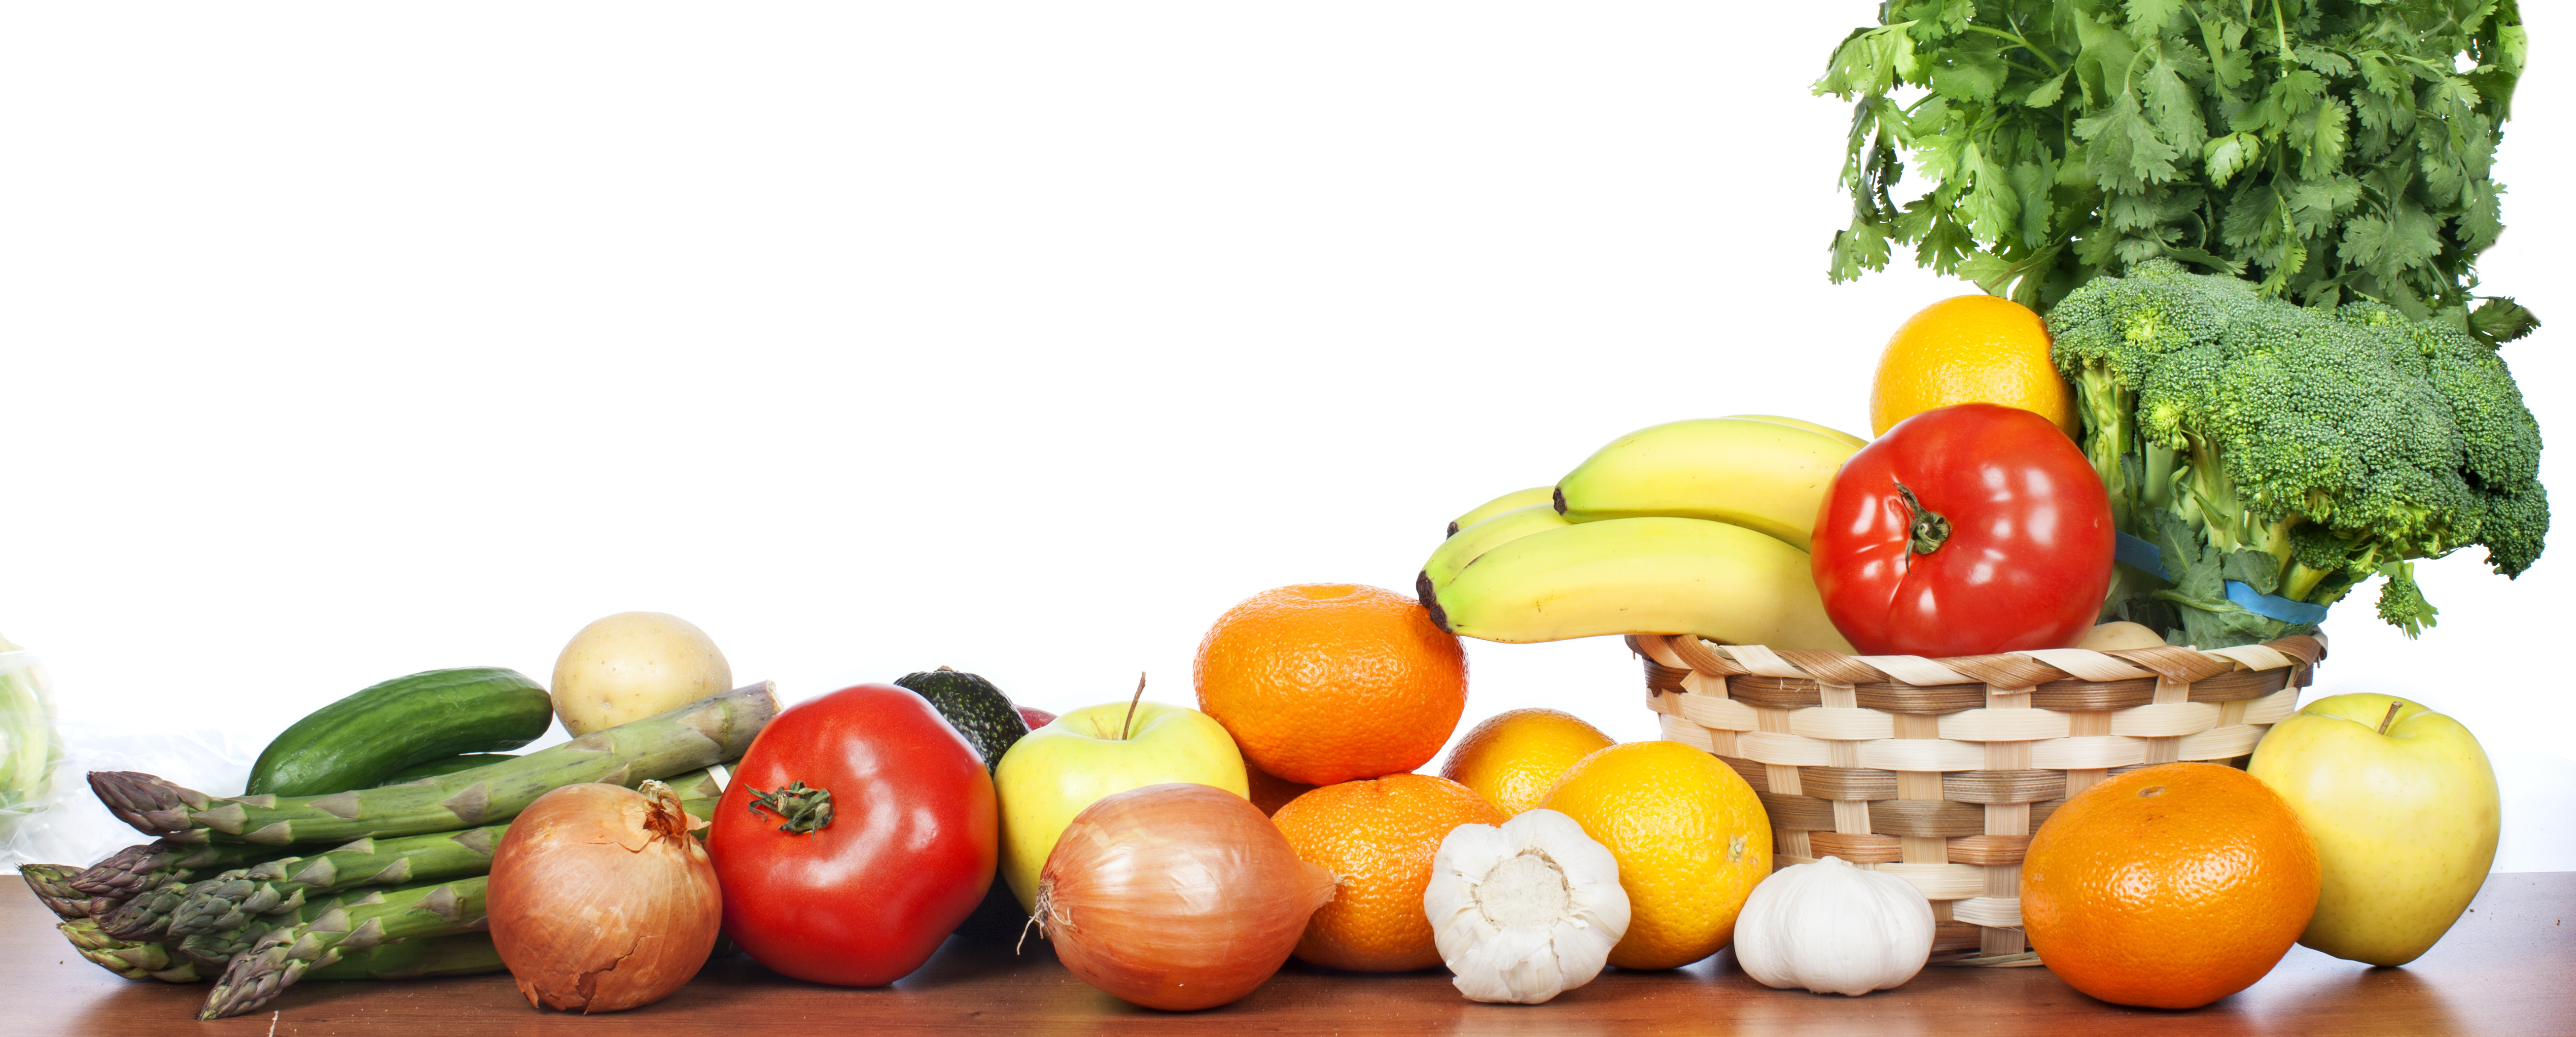 New Dietary Recommendations Pharmacists Should Promote